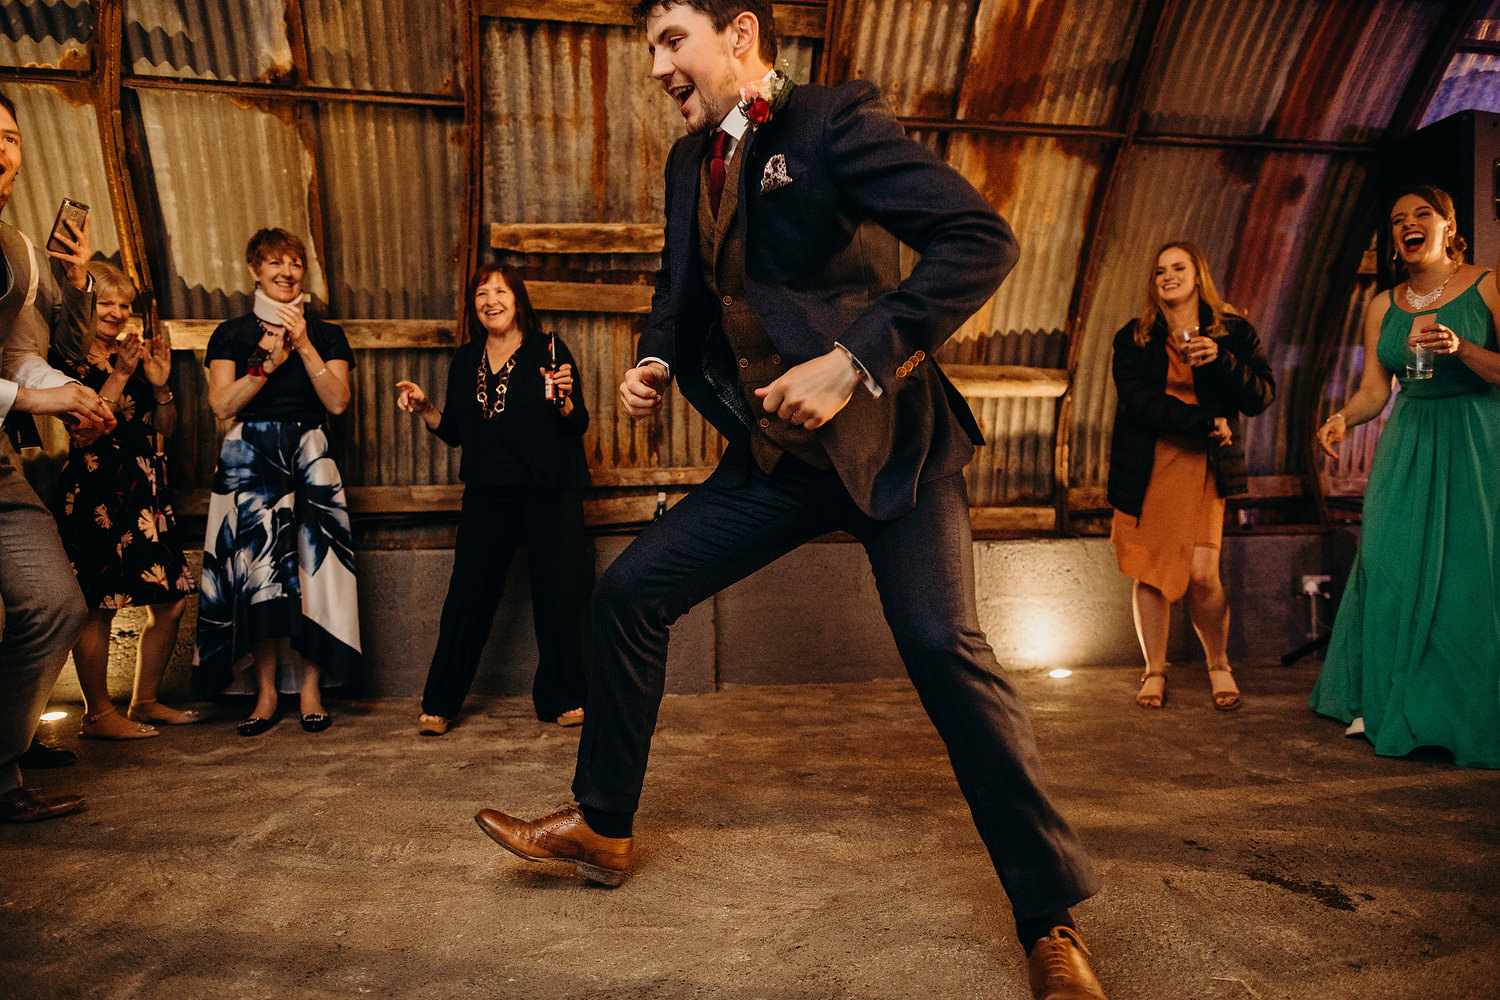 groom dancing at wedding